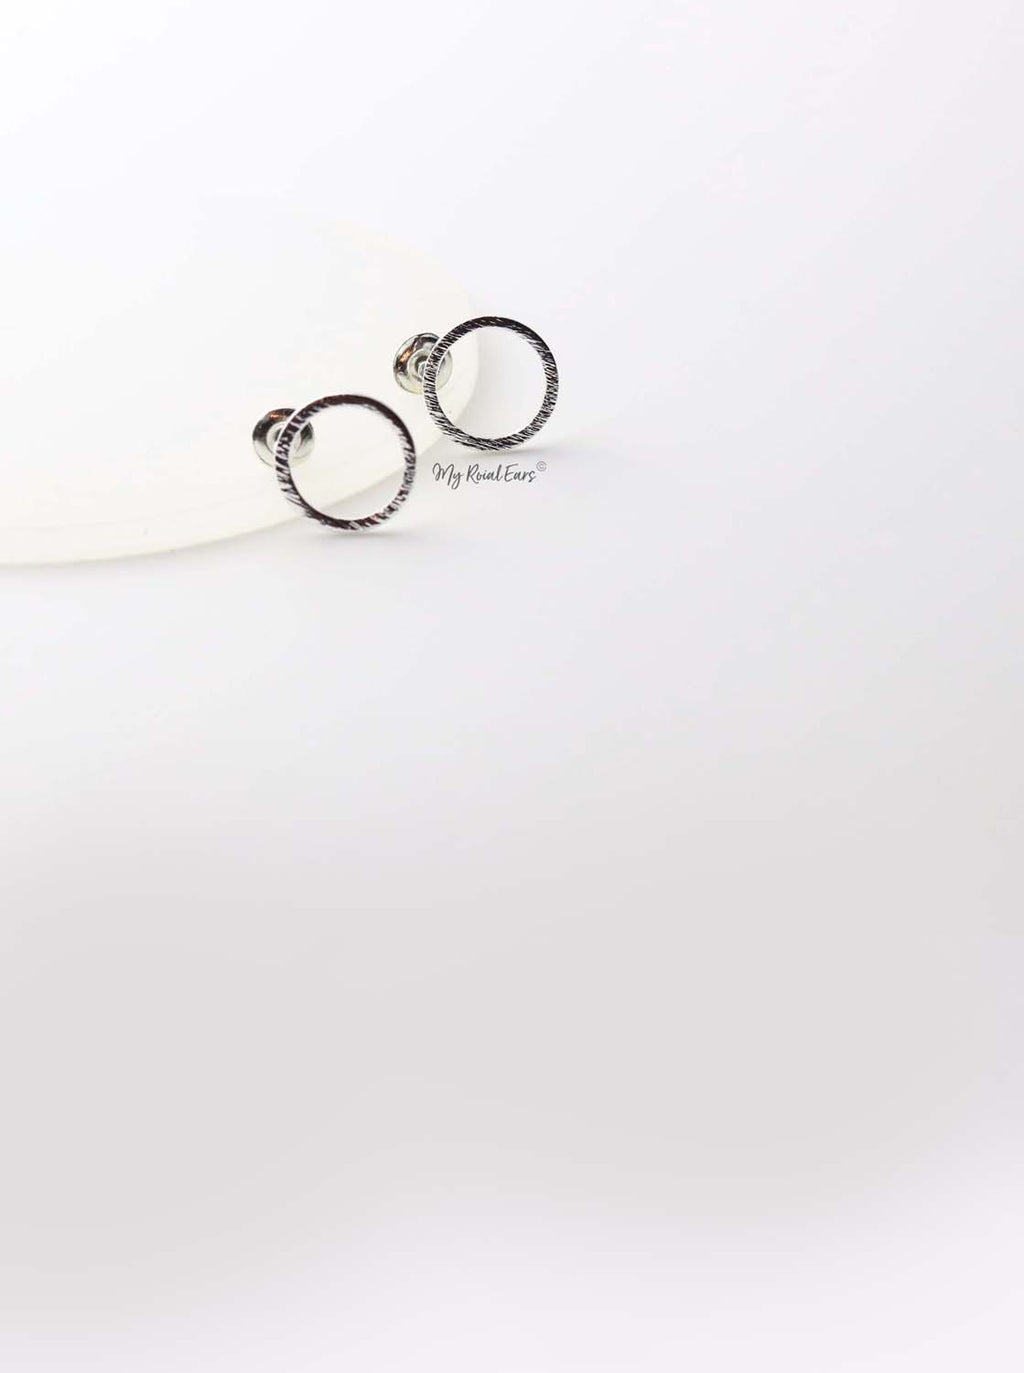 Anthea Silver- round circle stud earrings - My Roial Ears LTD